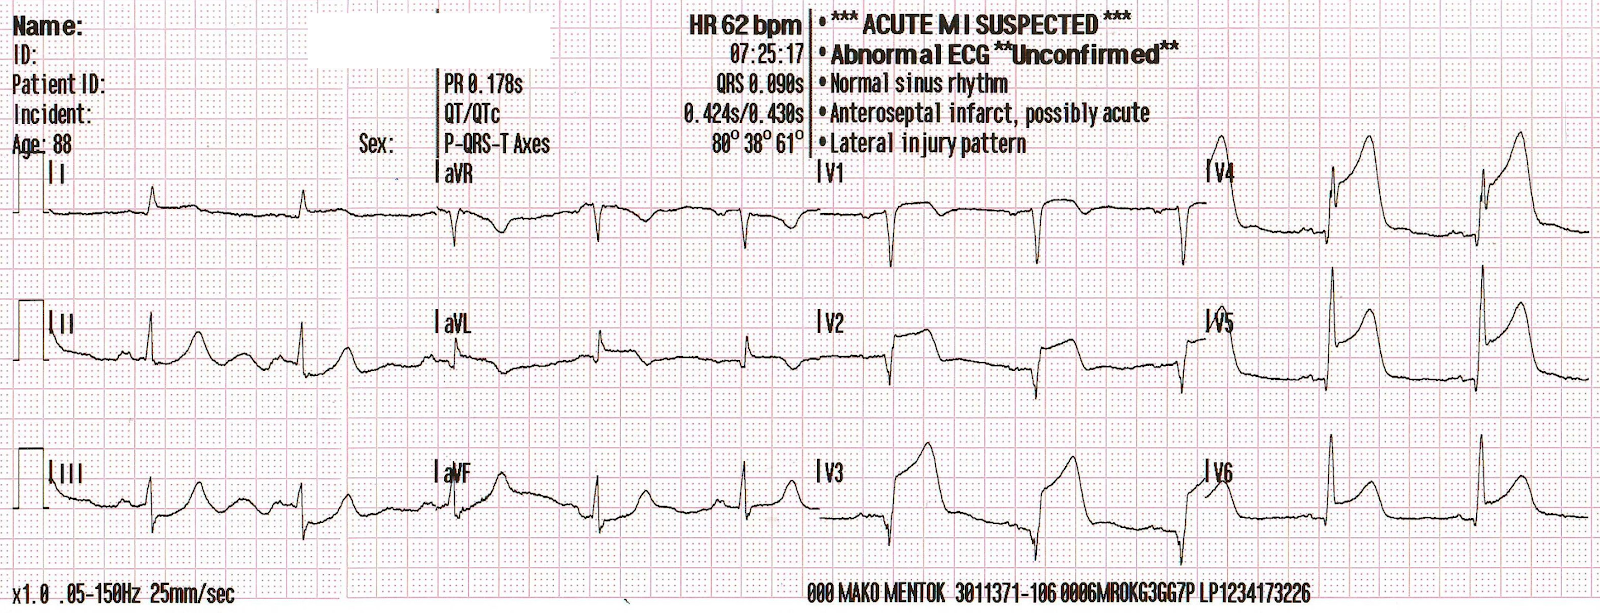 Dr  Smith's ECG Blog: Besides the Nonspecific T-wave Inversion in